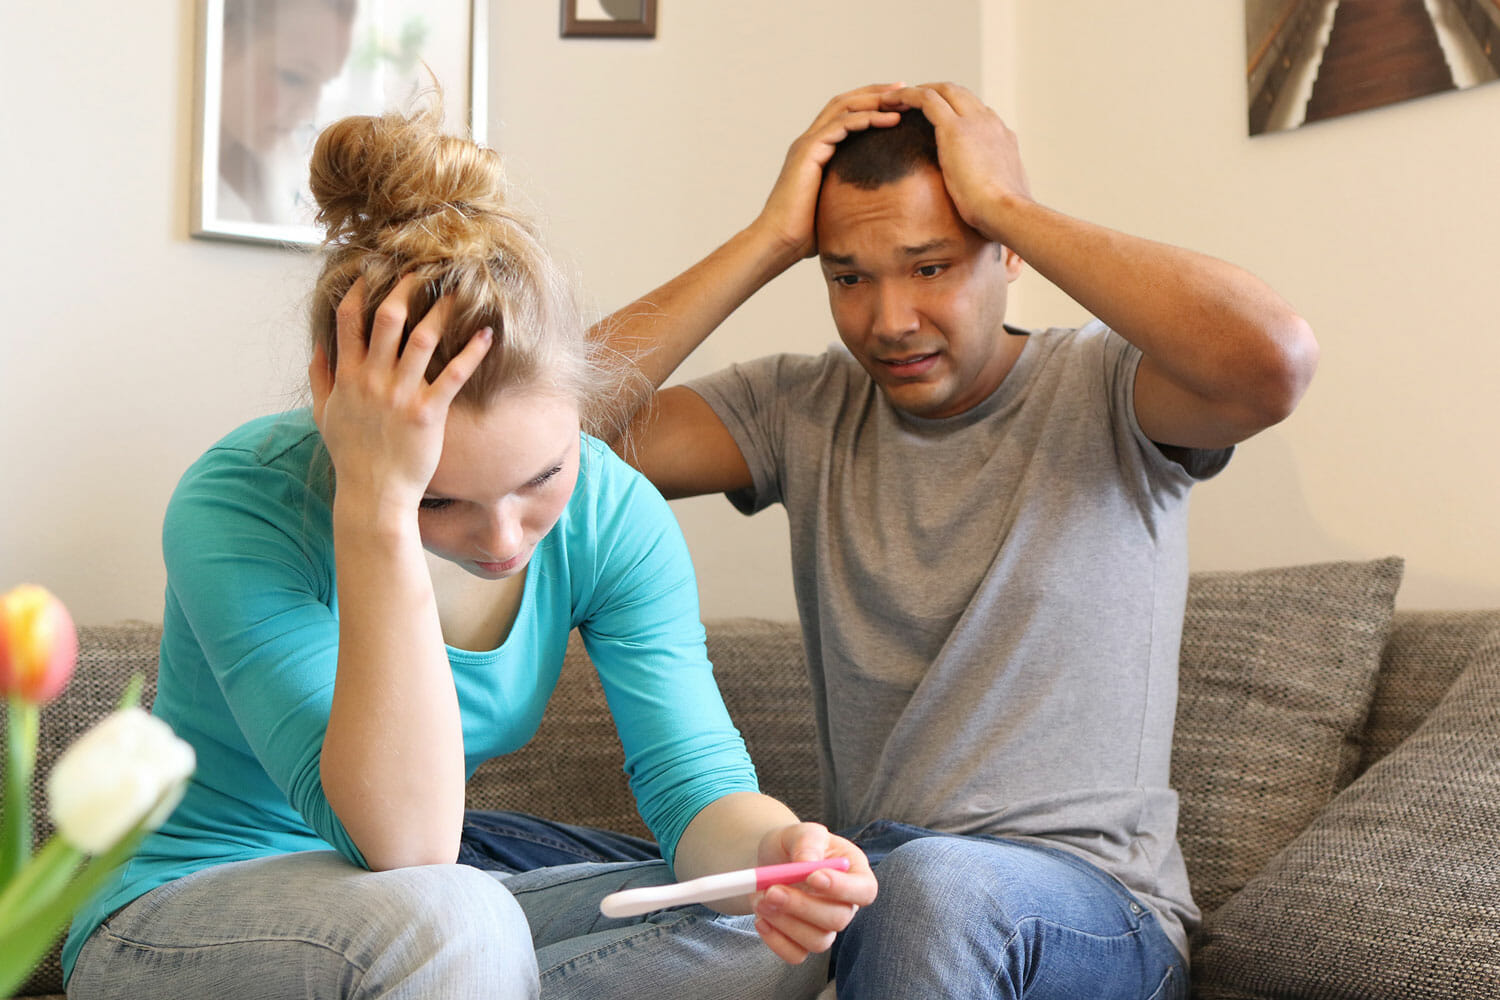 I Want the divorce: Ok Now What?